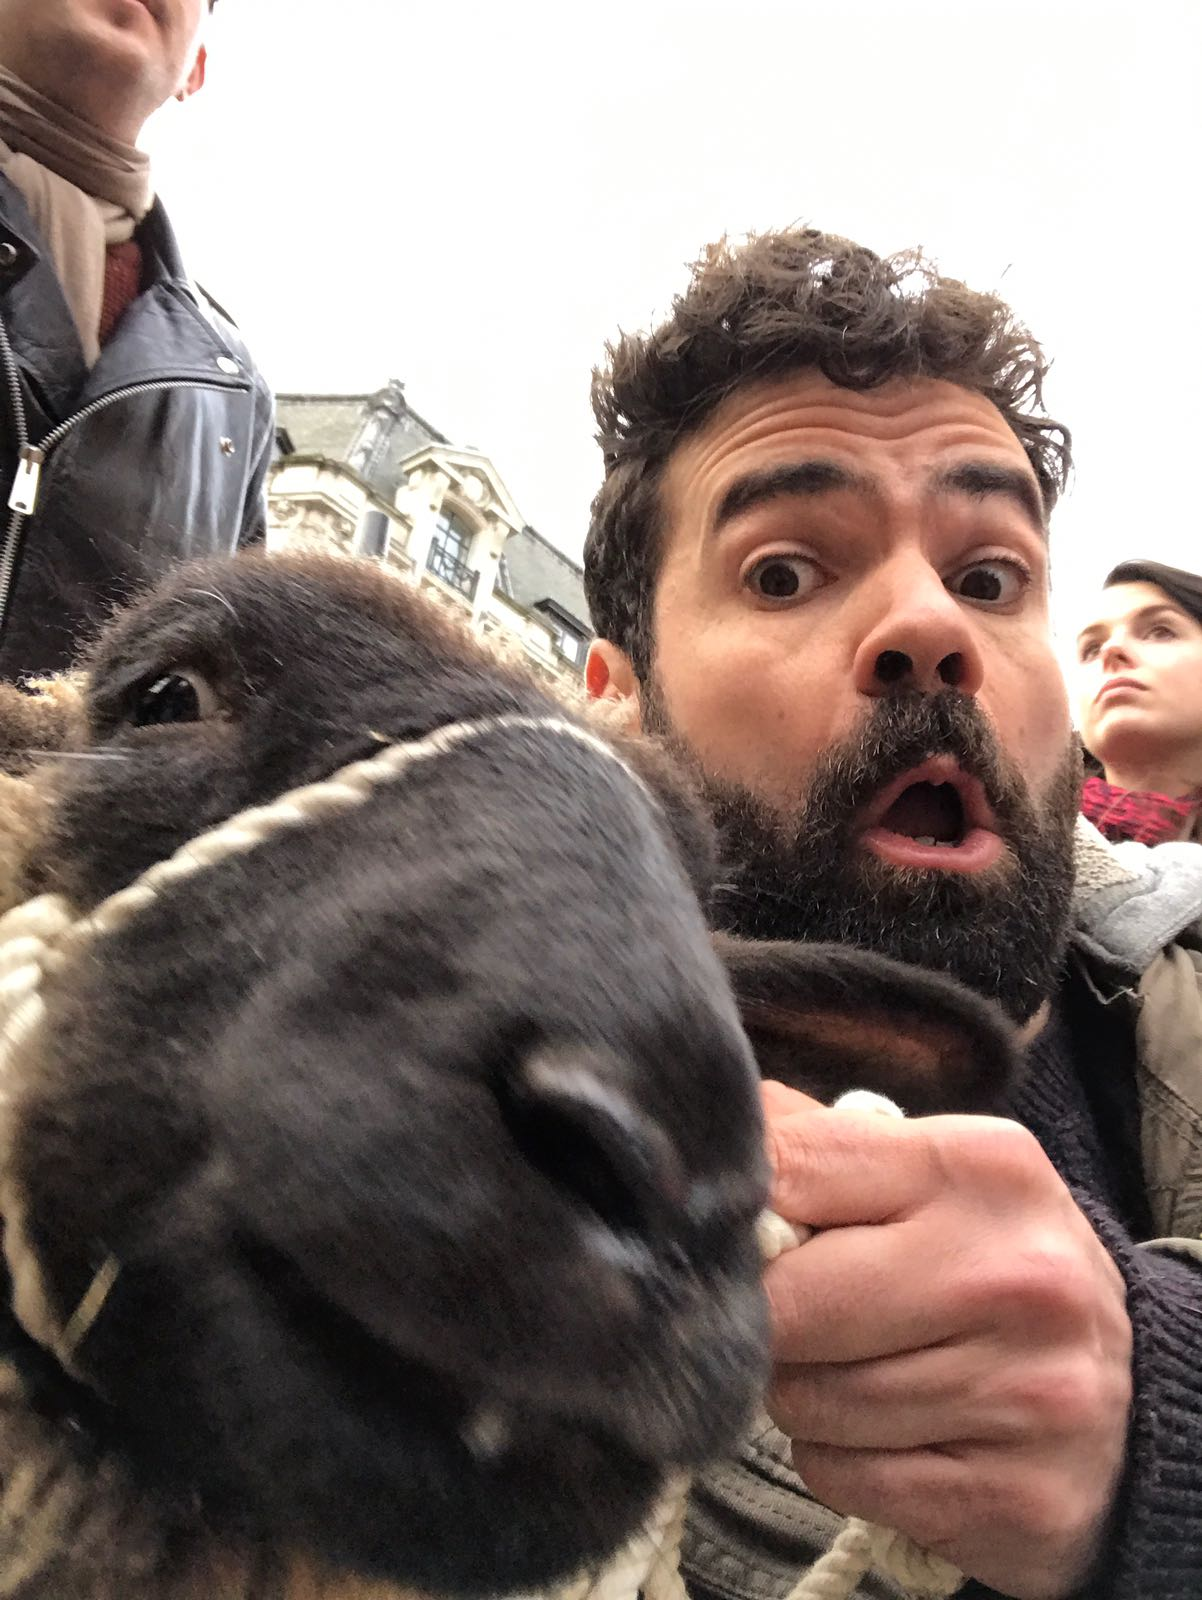 A close-up selfie photograph of a sheep and bearded and expressionate man on Oxford St in London.